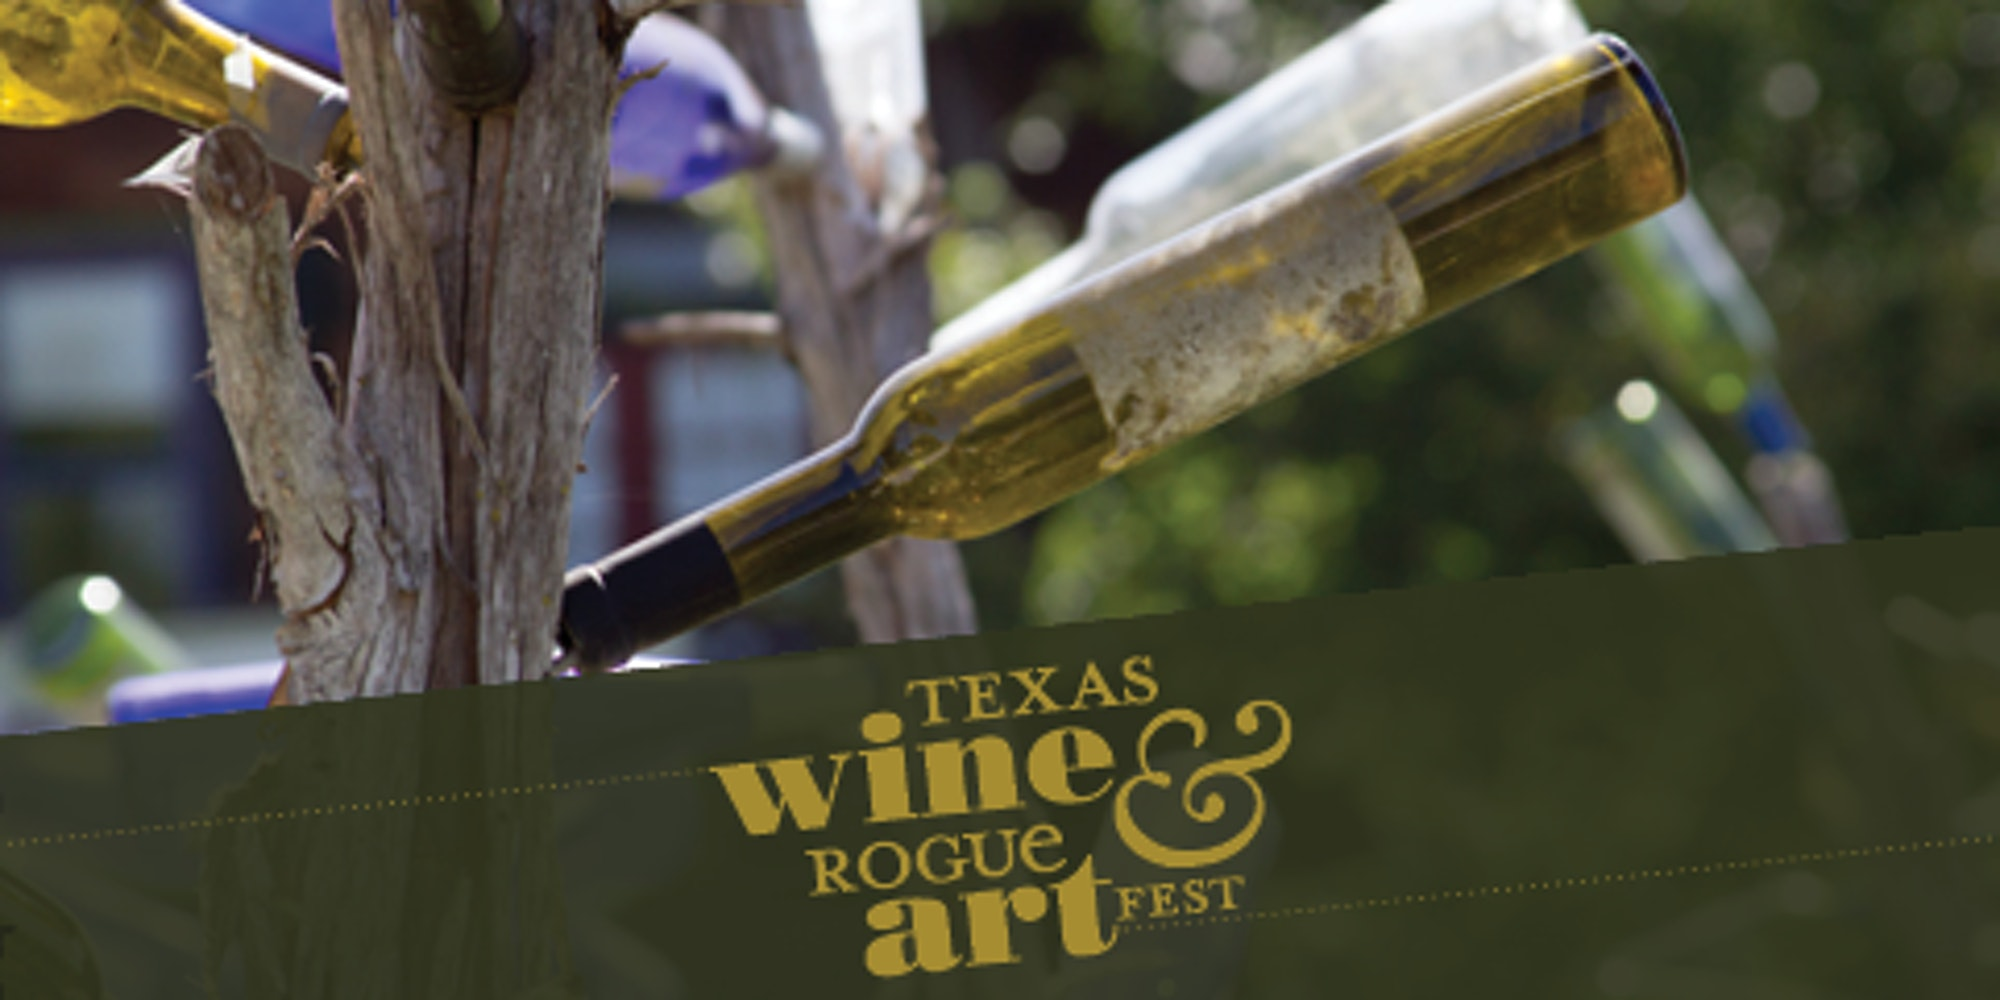 texas-rogue-wine-and-art-festival-image.jpg